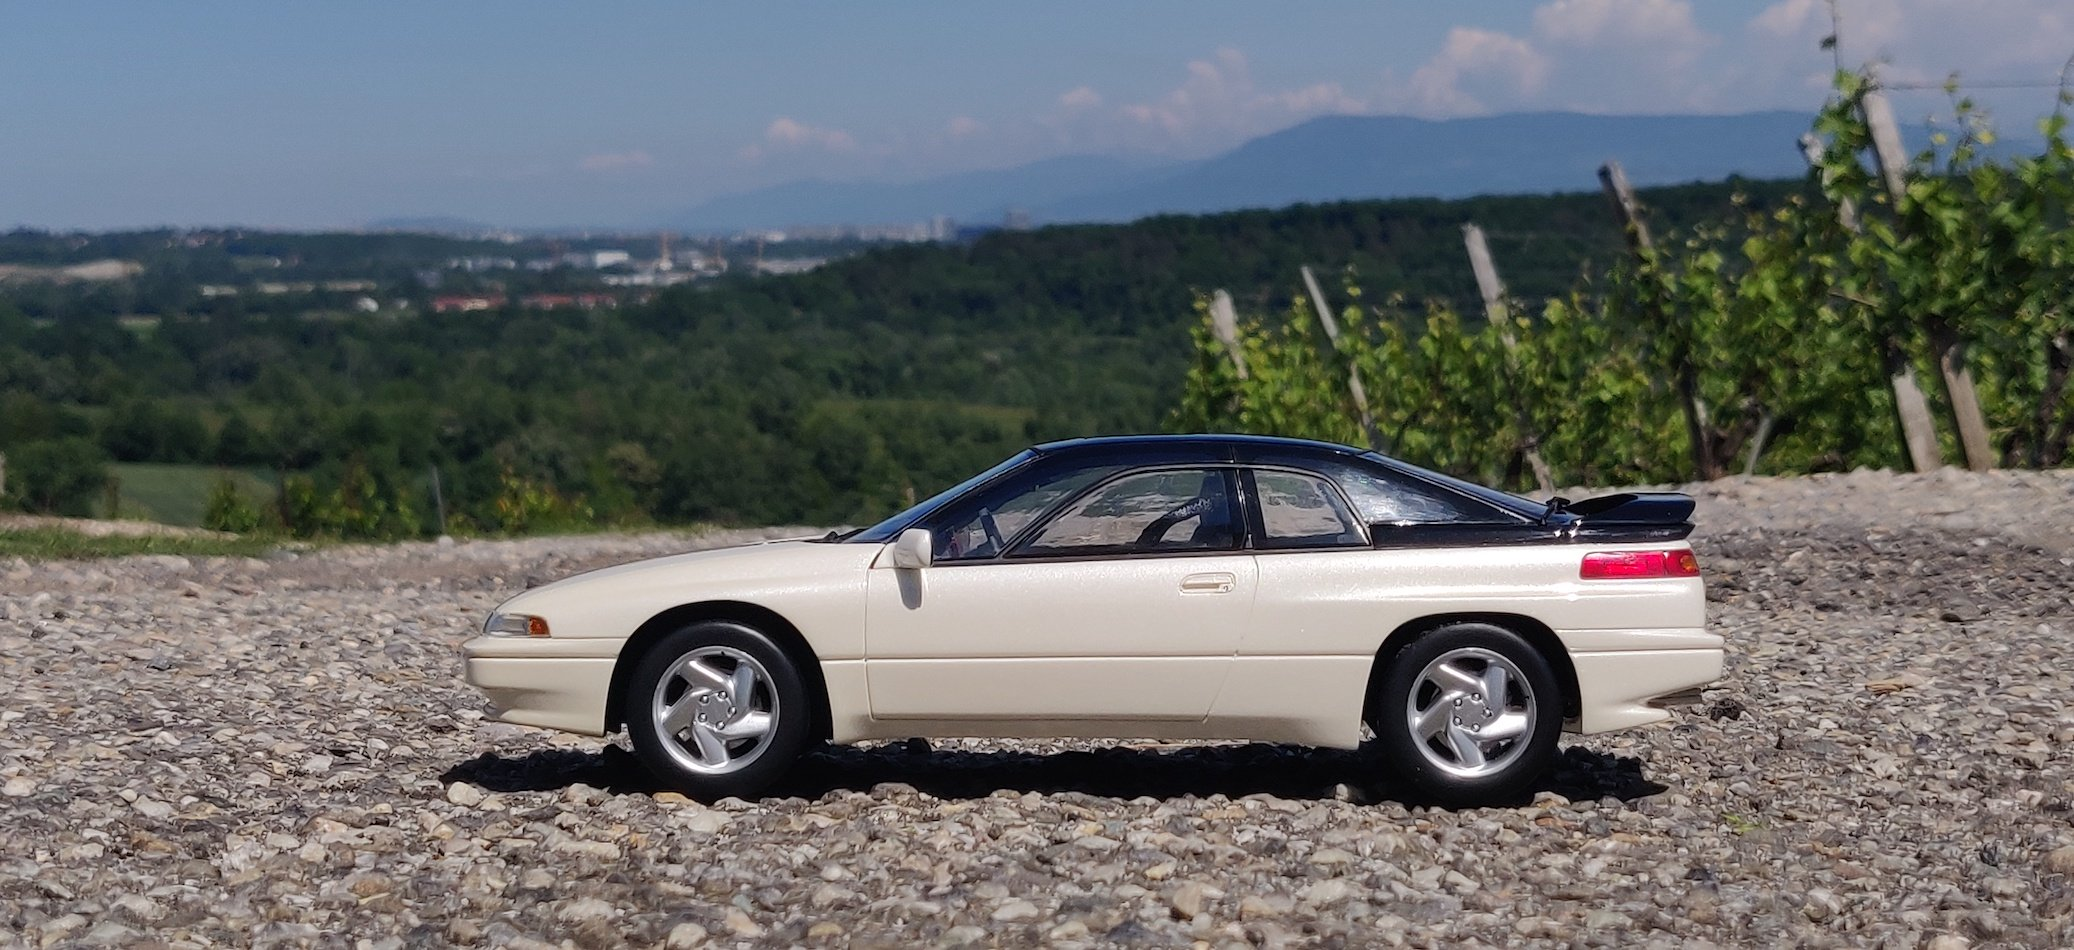 Subaru SVX outdoor1